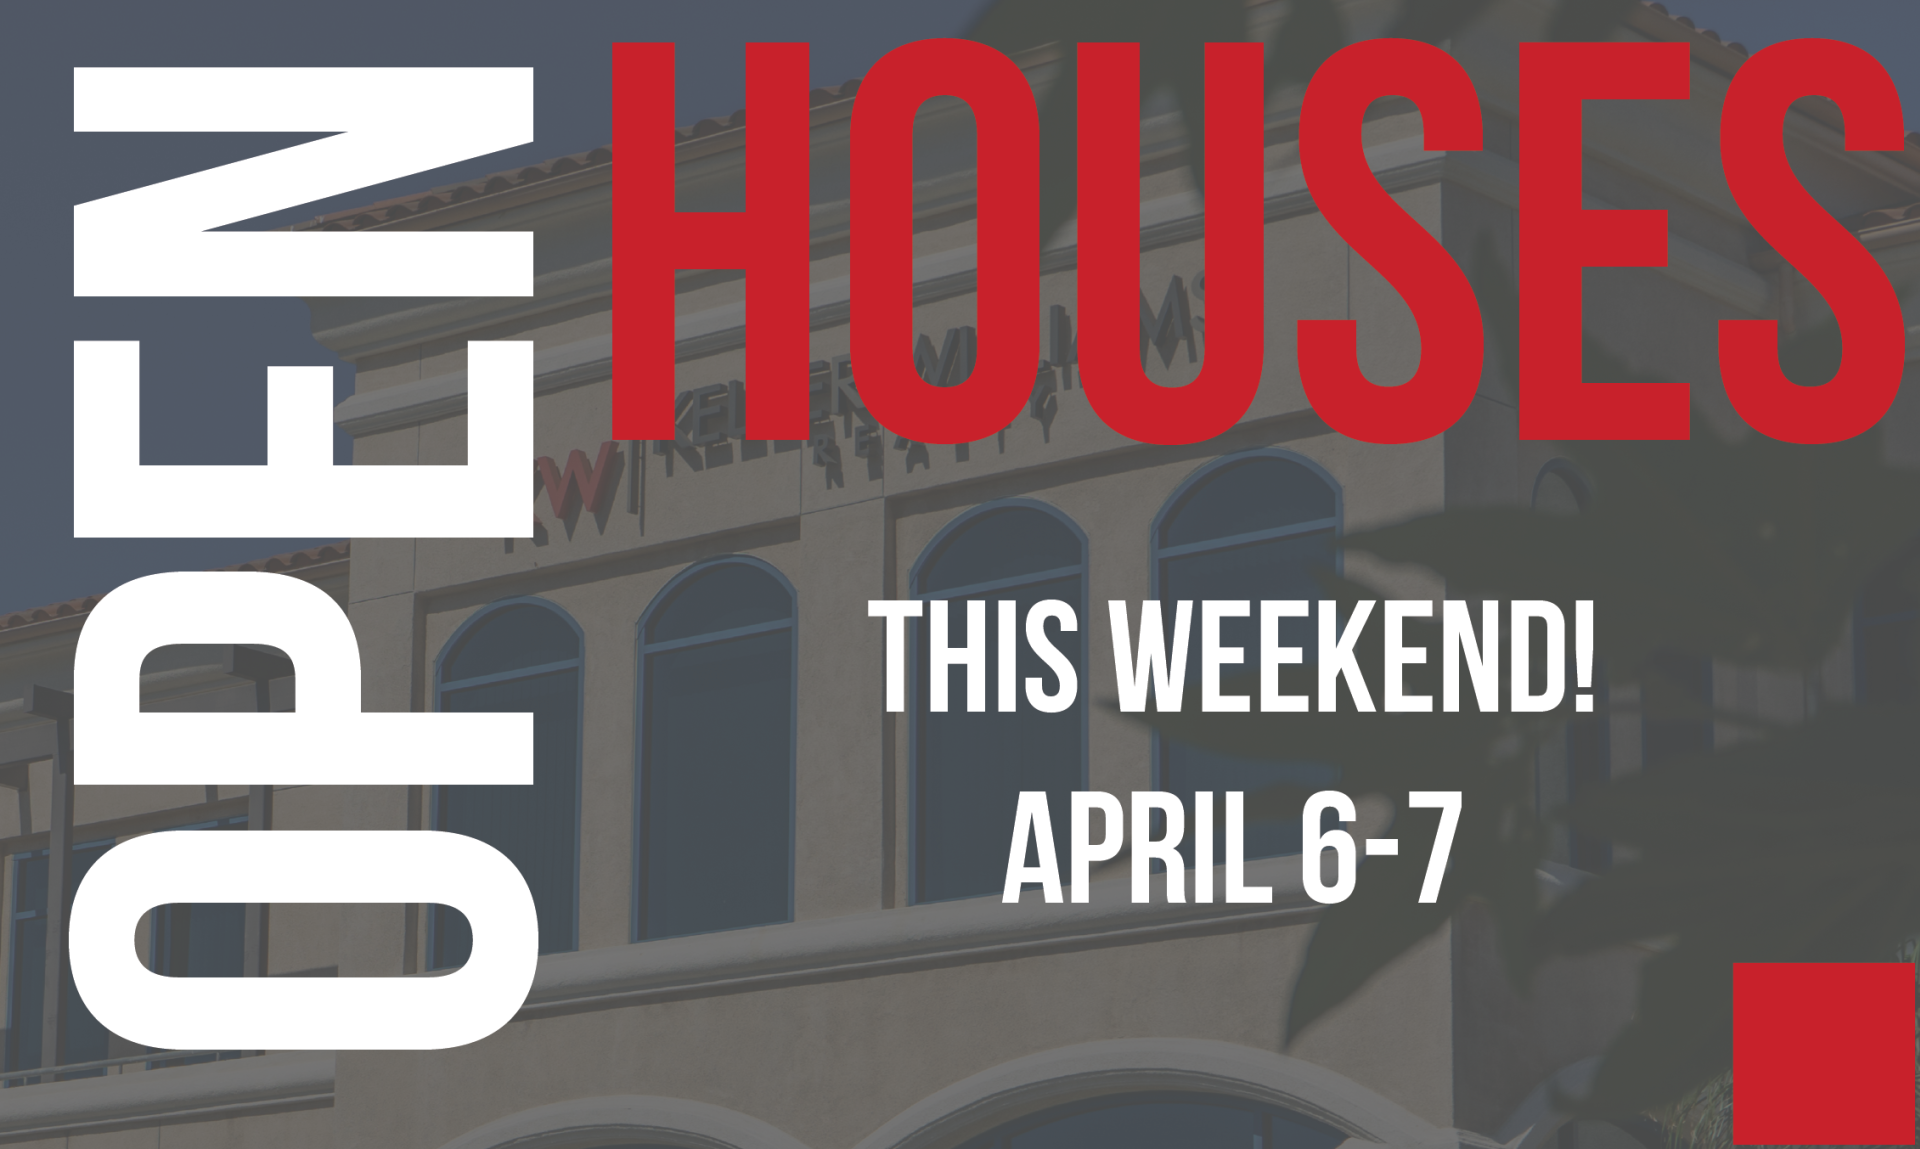 Open Houses This Weekend! April 6-7